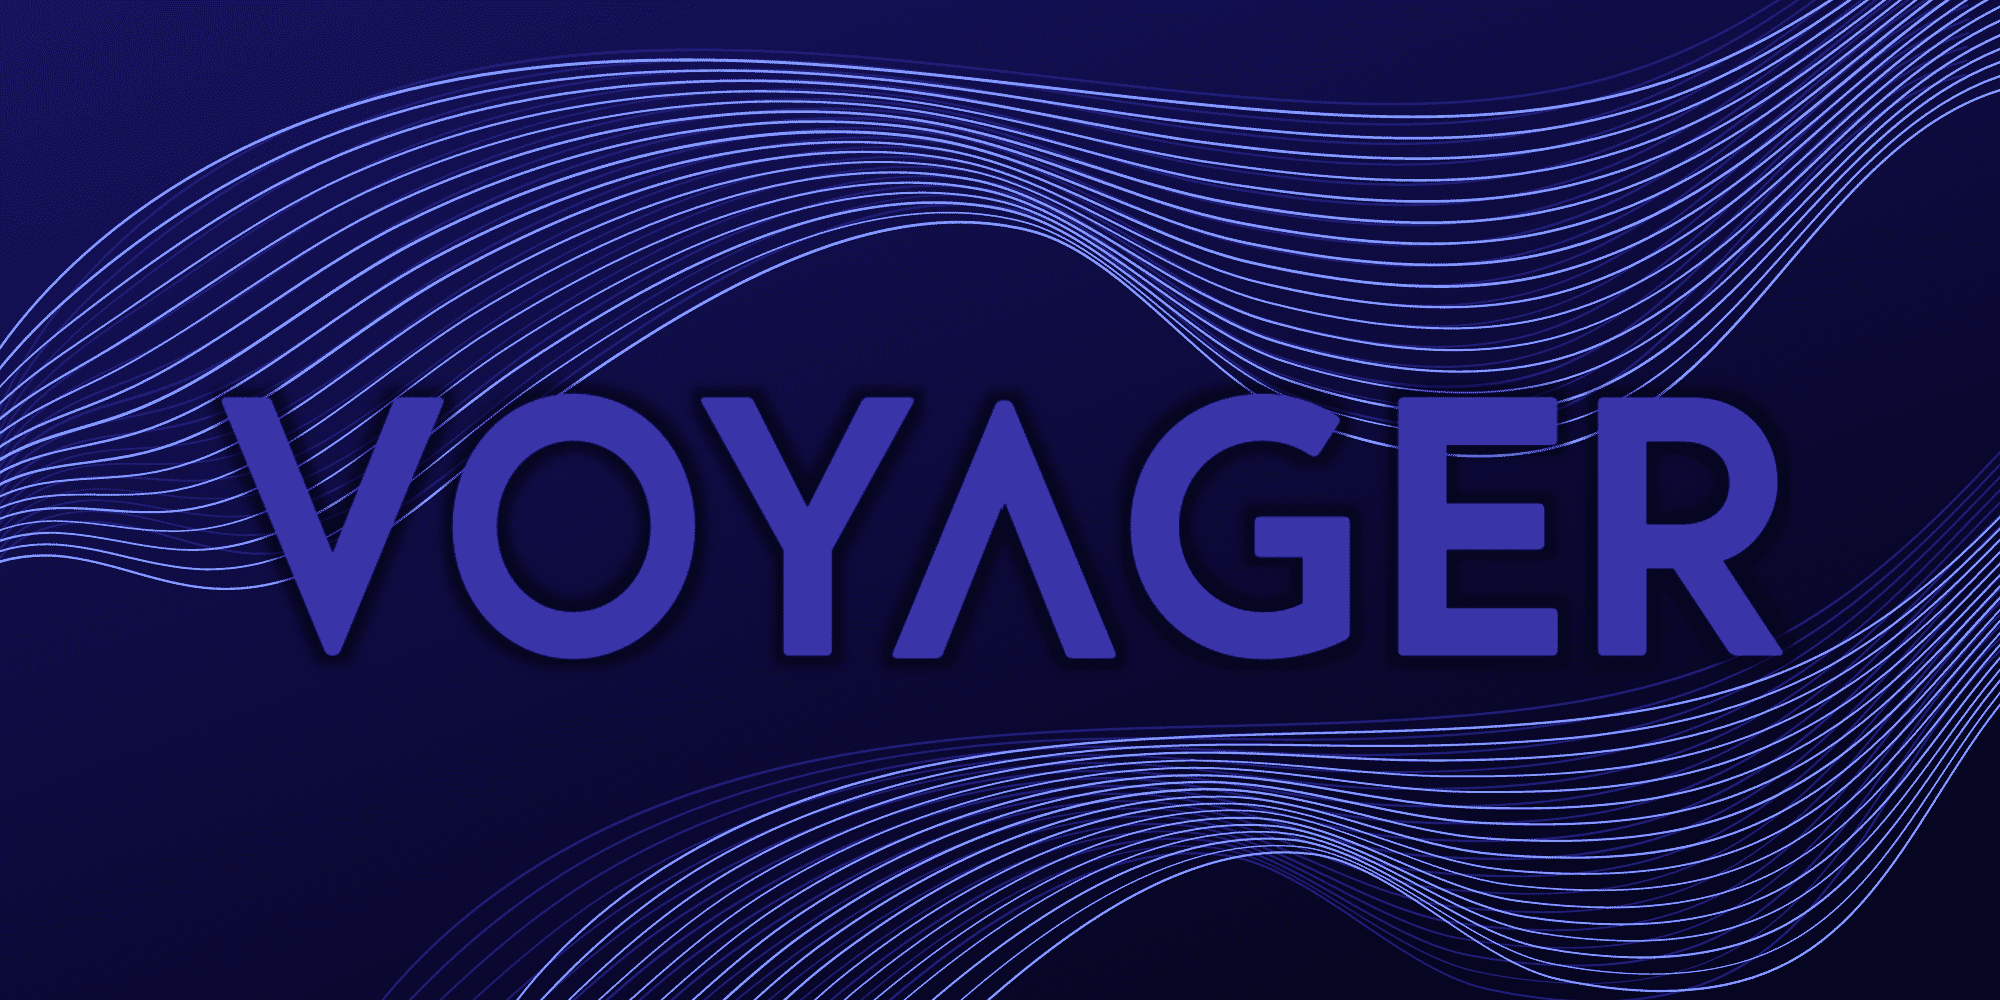 Voyager Crypto Invest: Features, Perks, Cons, and Alternatives